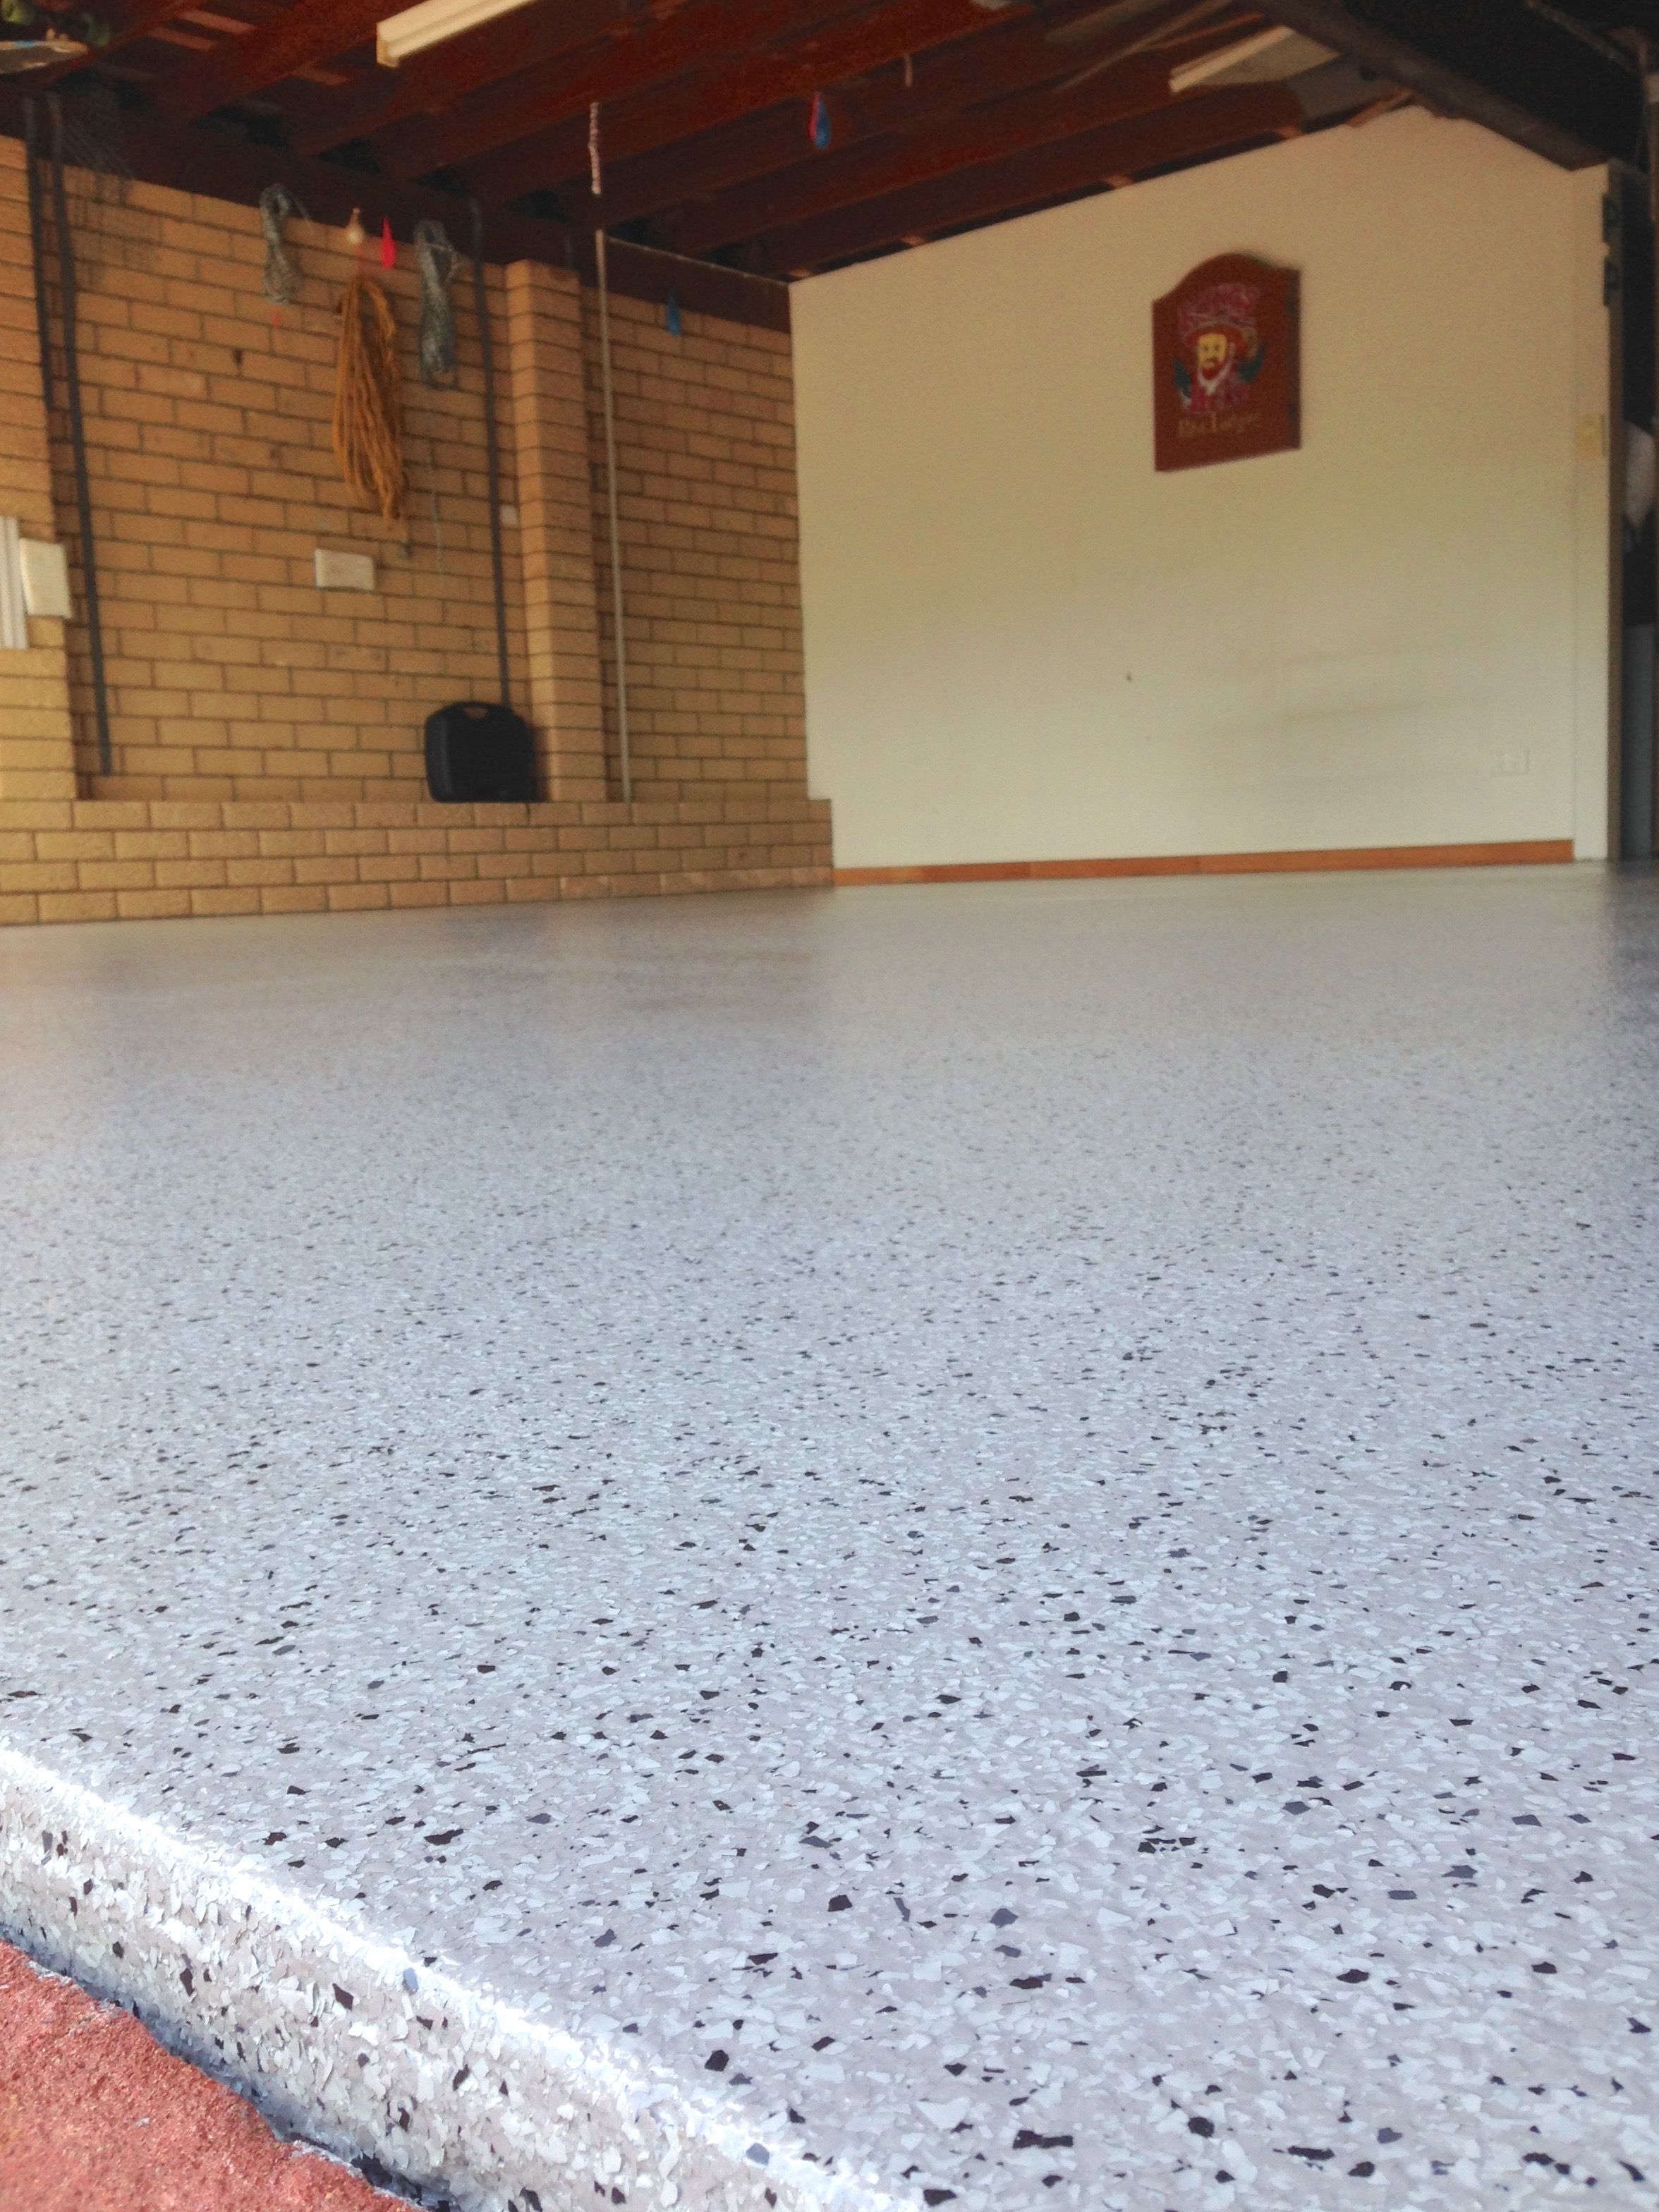 Installing A Beautiful Flake Epoxy Floor Using Slate Over A Pipeline Grey Base Coat At Buddina This Wee Garage Floor Coatings Epoxy Flooring Cost Epoxy Floor